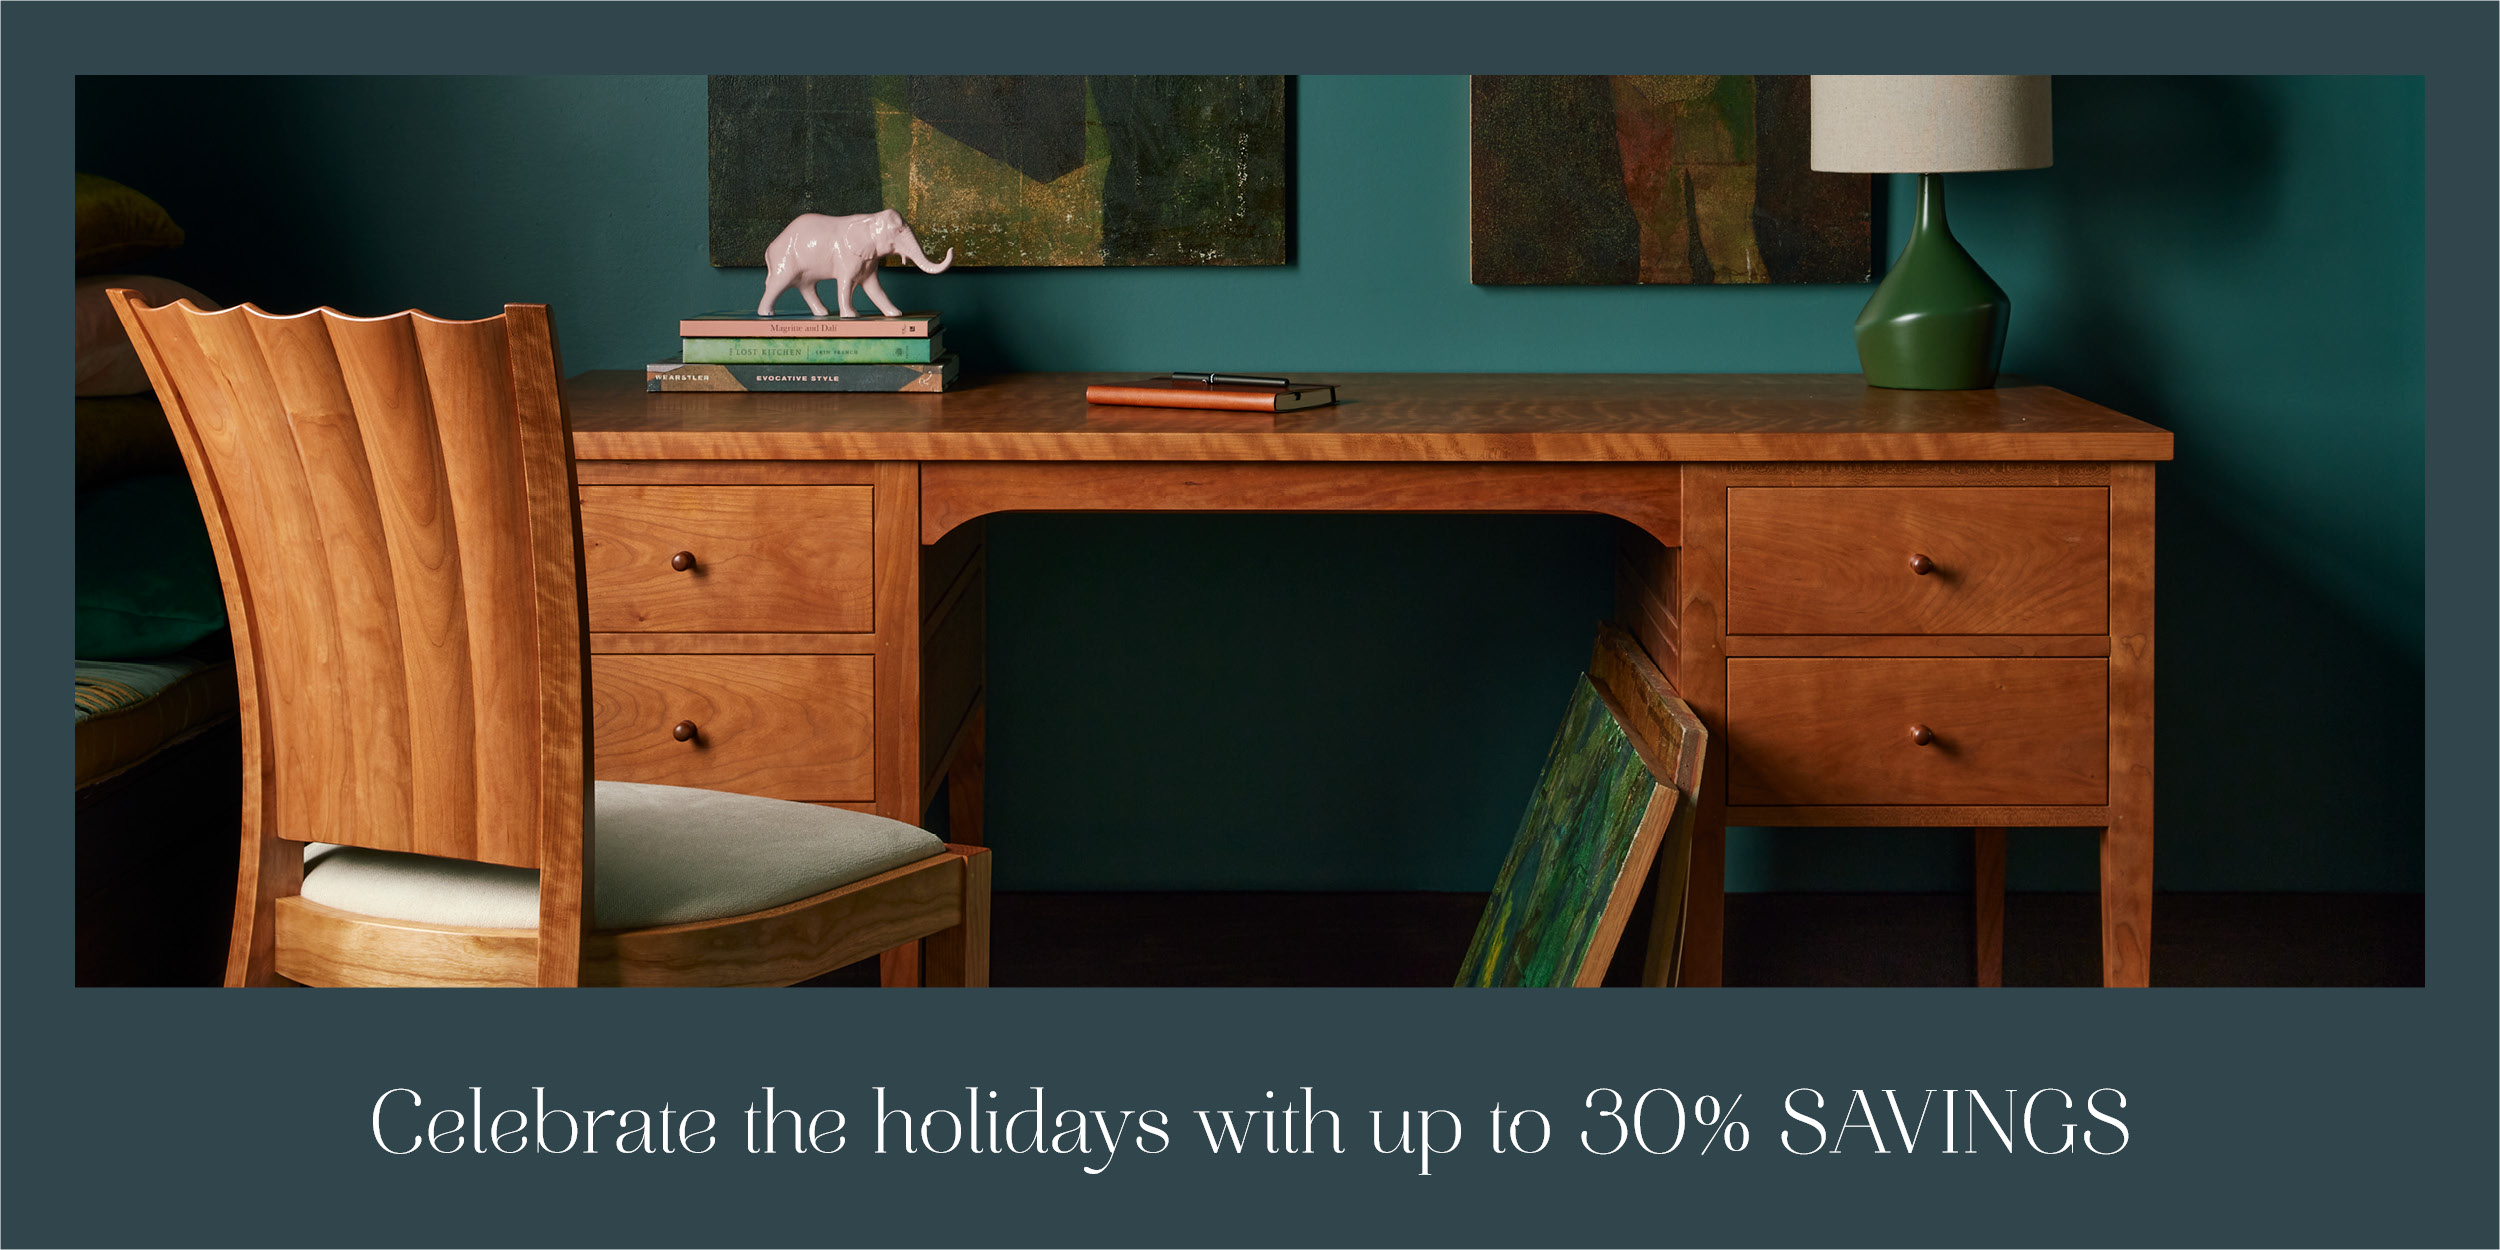 Celebrate the holidays with up to 30% savings / office furniture